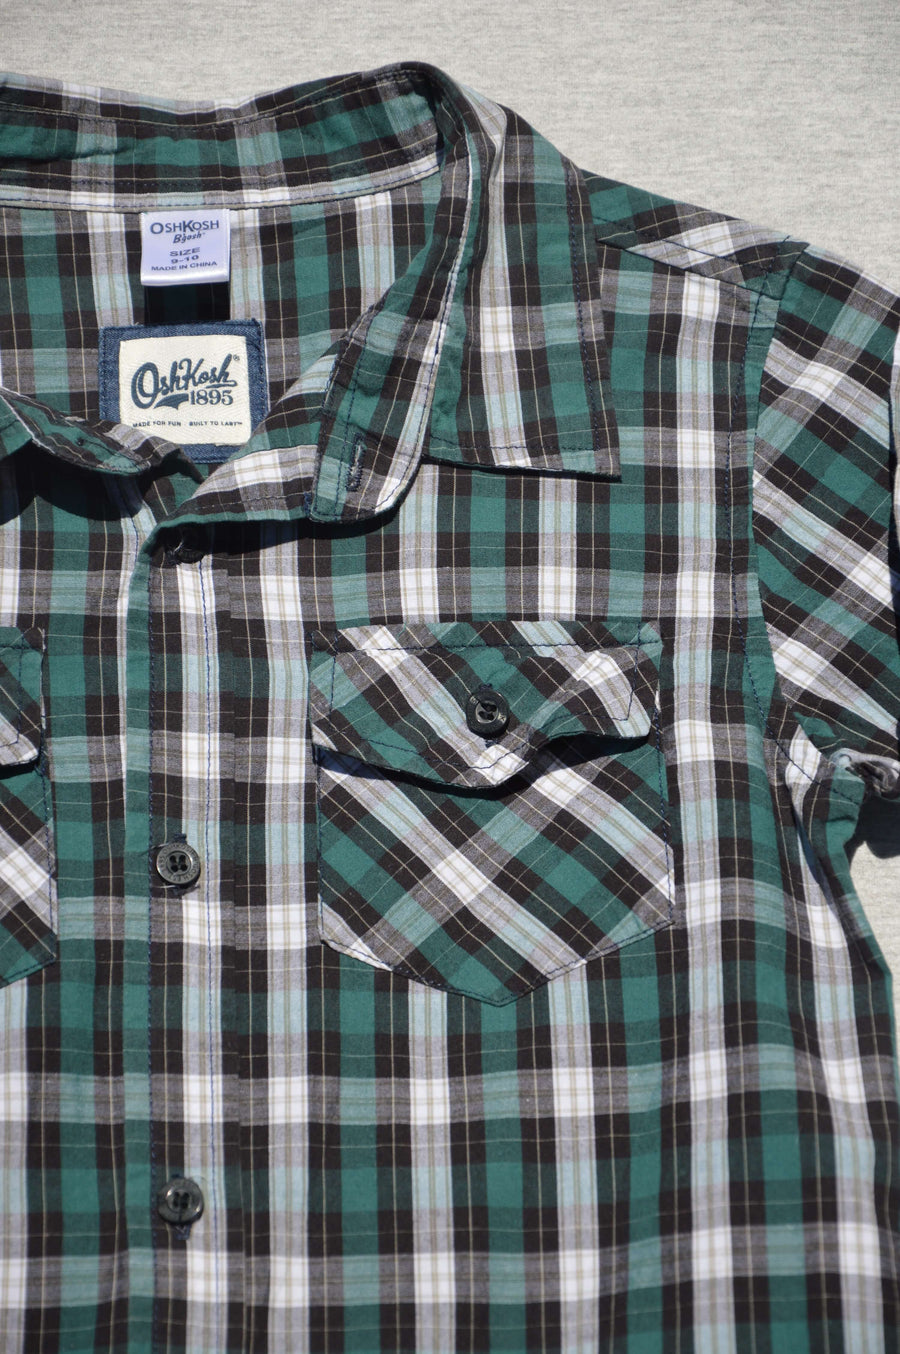 OshKosh - nearly new - green & black checked long-sleeved shirt, size 9-10